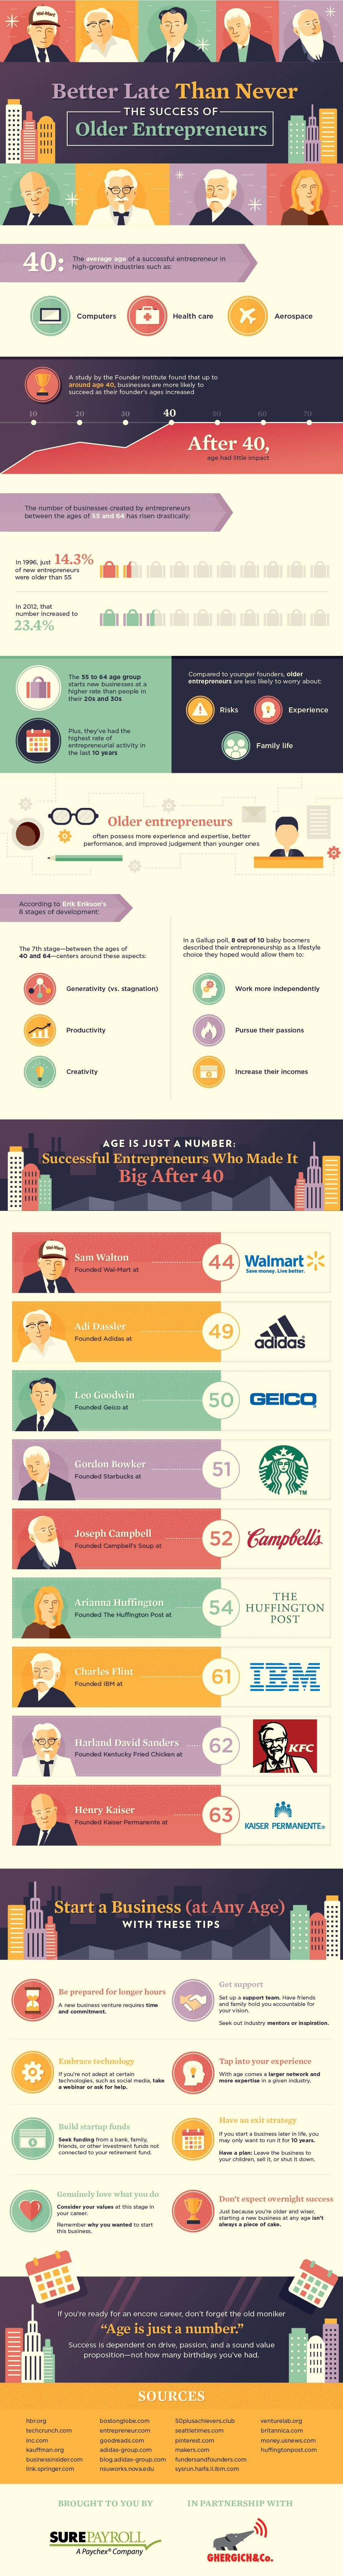 The Success Of The Entrepreneurs Who Started Late (infographic)